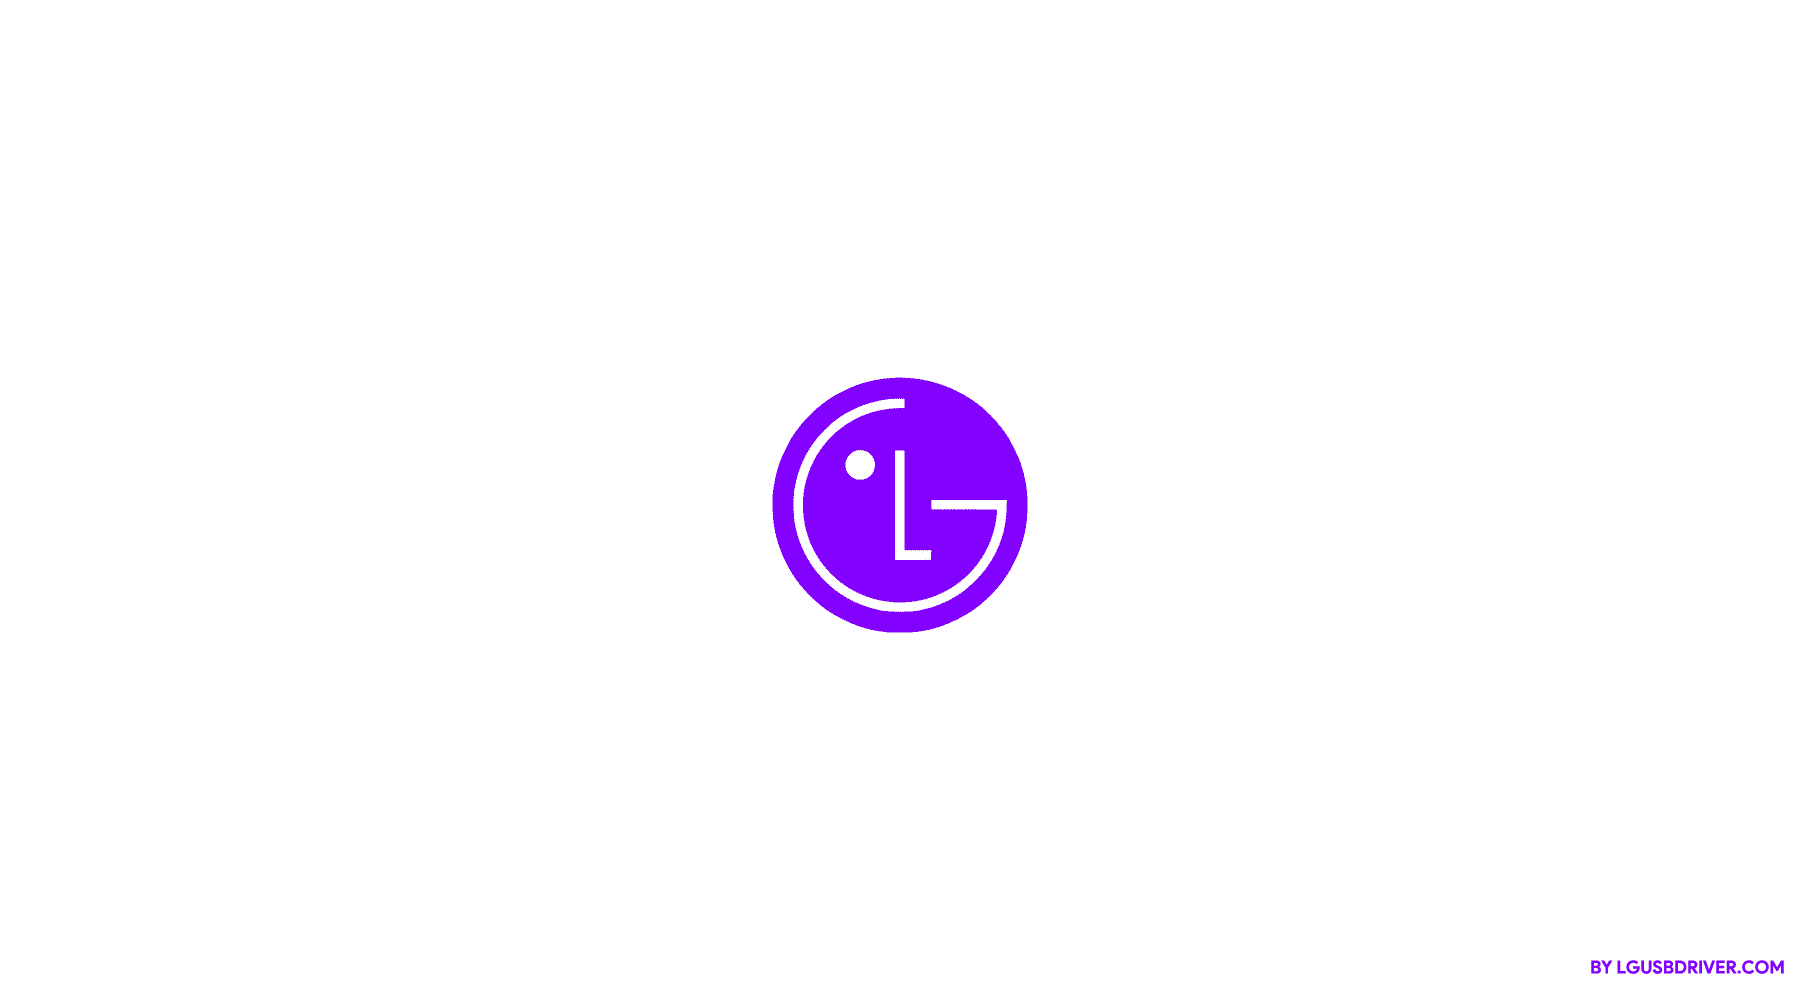 LG Wallpapers 02